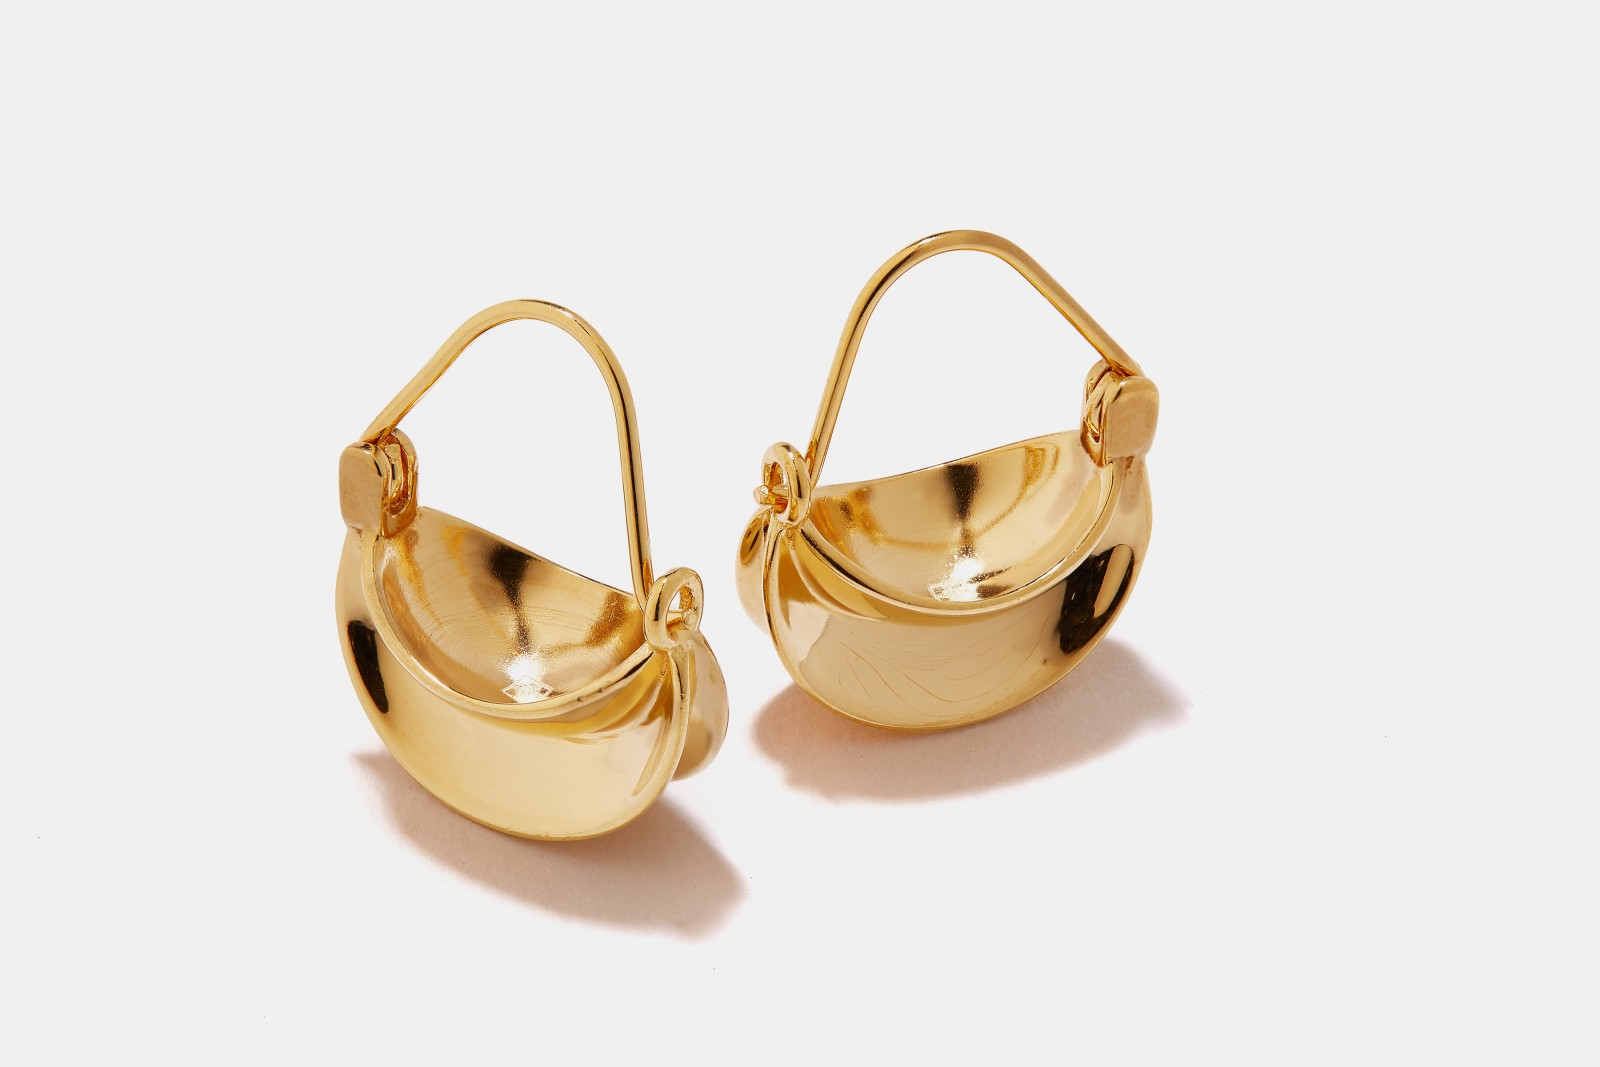 Mini-Paniers-Dore-Earrings-Pair-14k-Gold-Plated-Brass